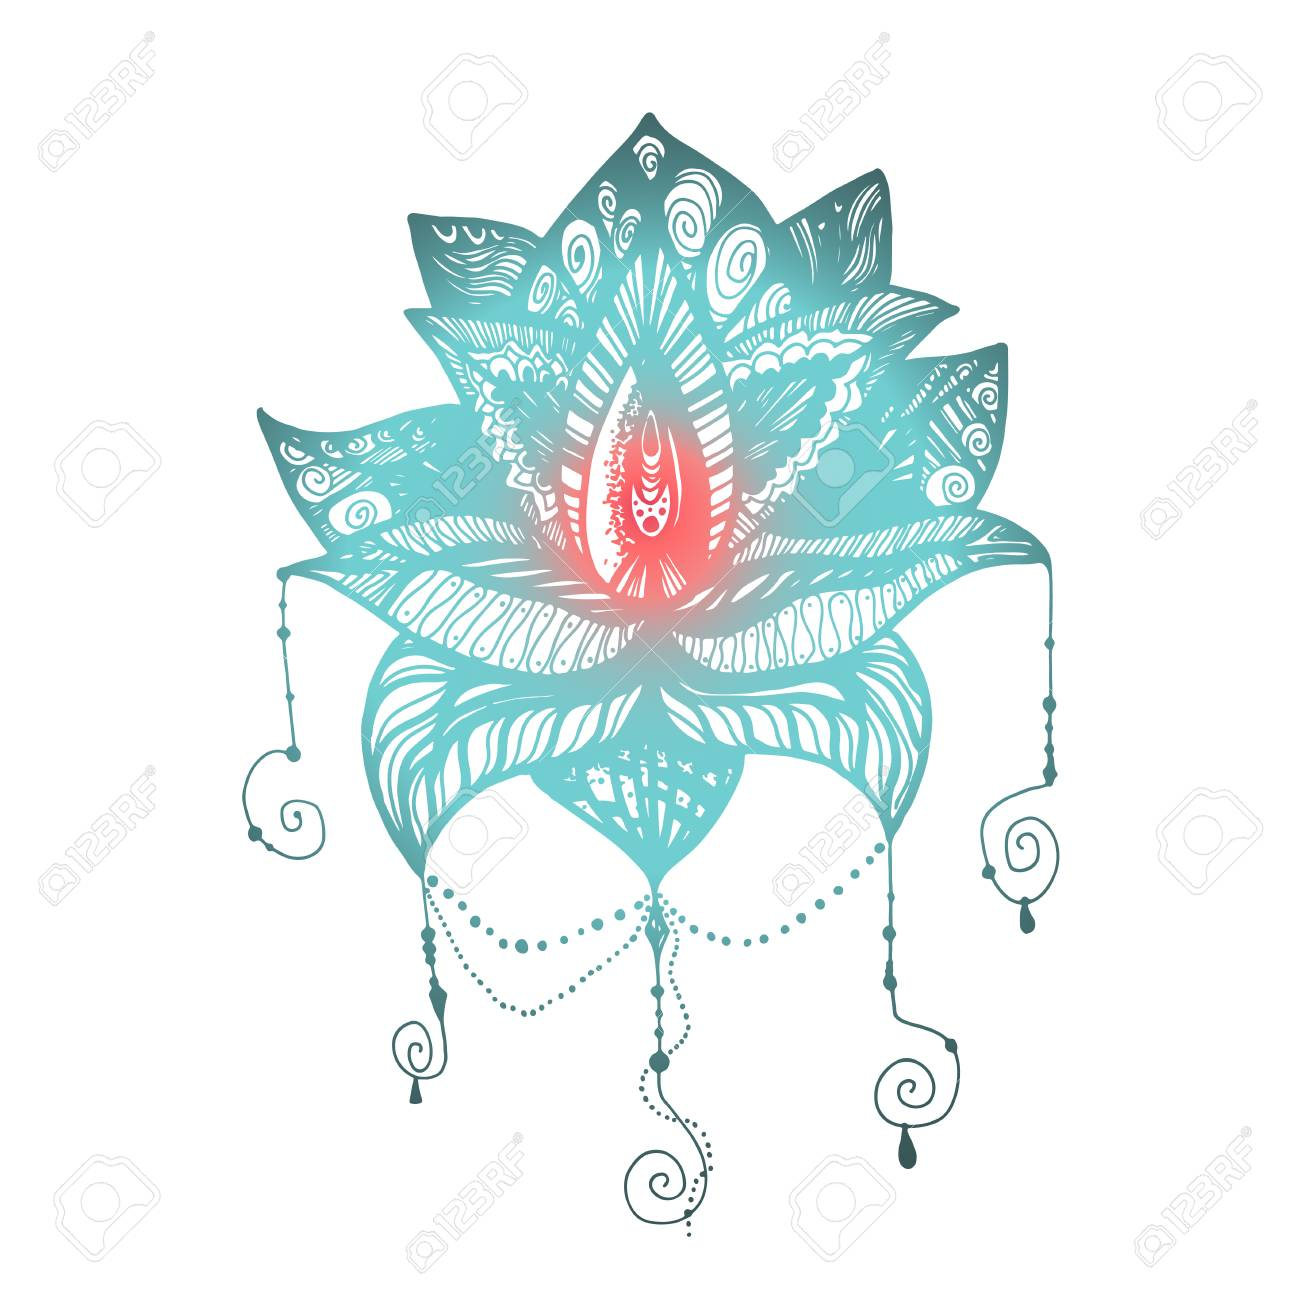 Flower Lotus Magic Symbol For Print Tattoo Coloring Book Fabric Royalty Free Cliparts Vectors And Stock Illustration Image 65552199